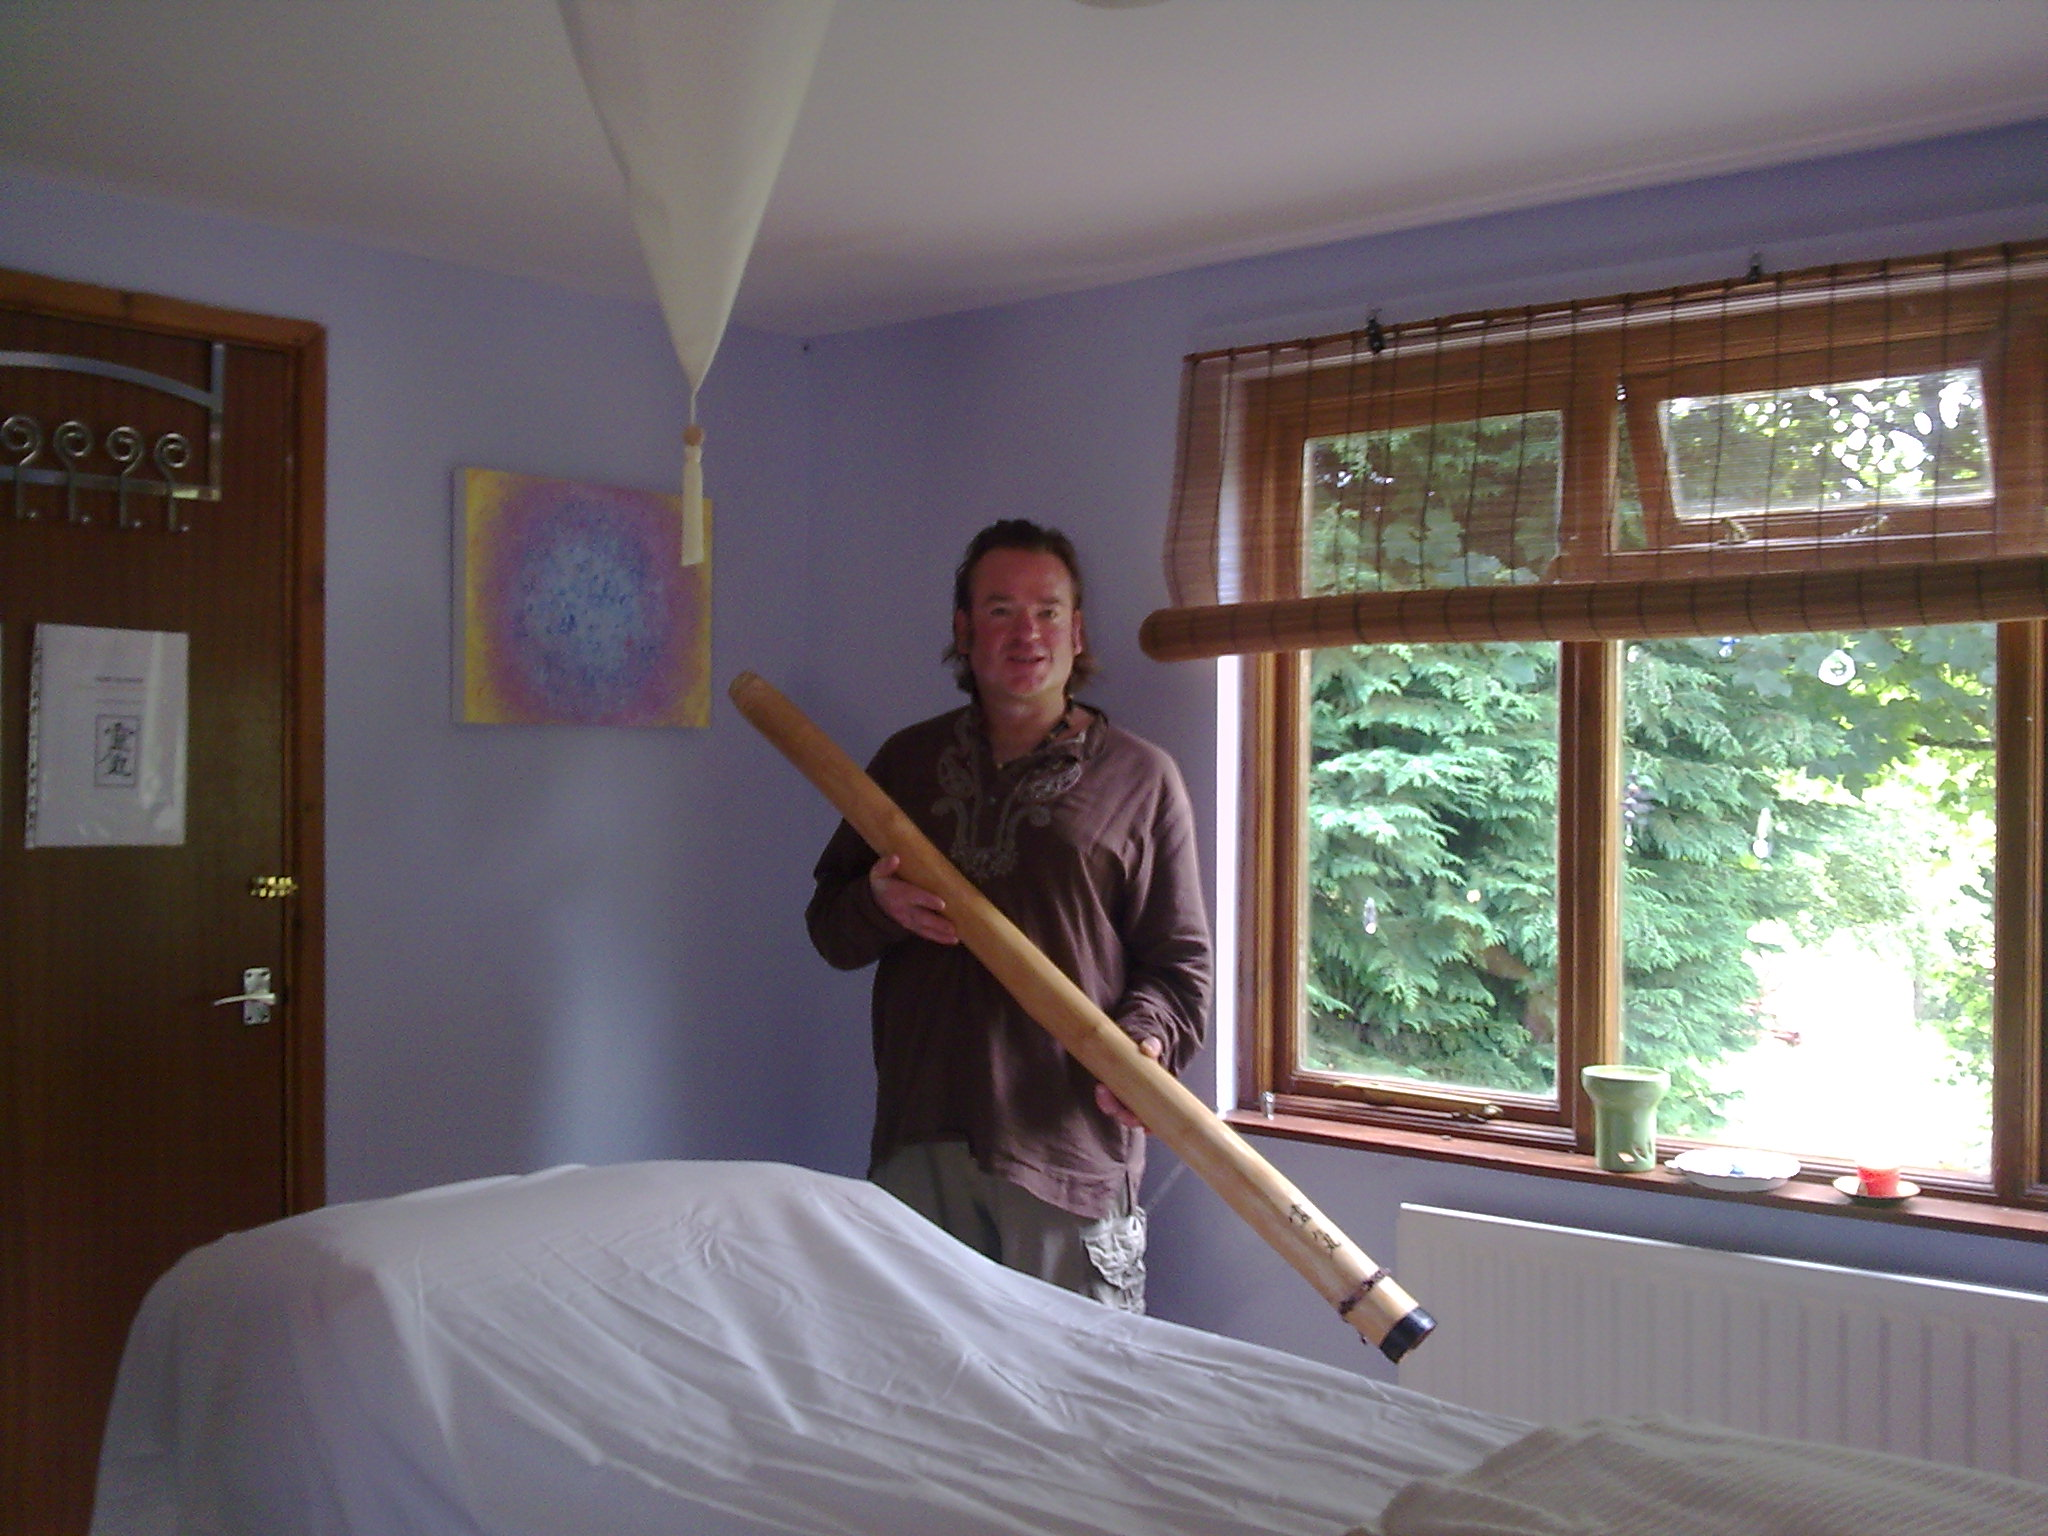 Chris with Didgeridoo